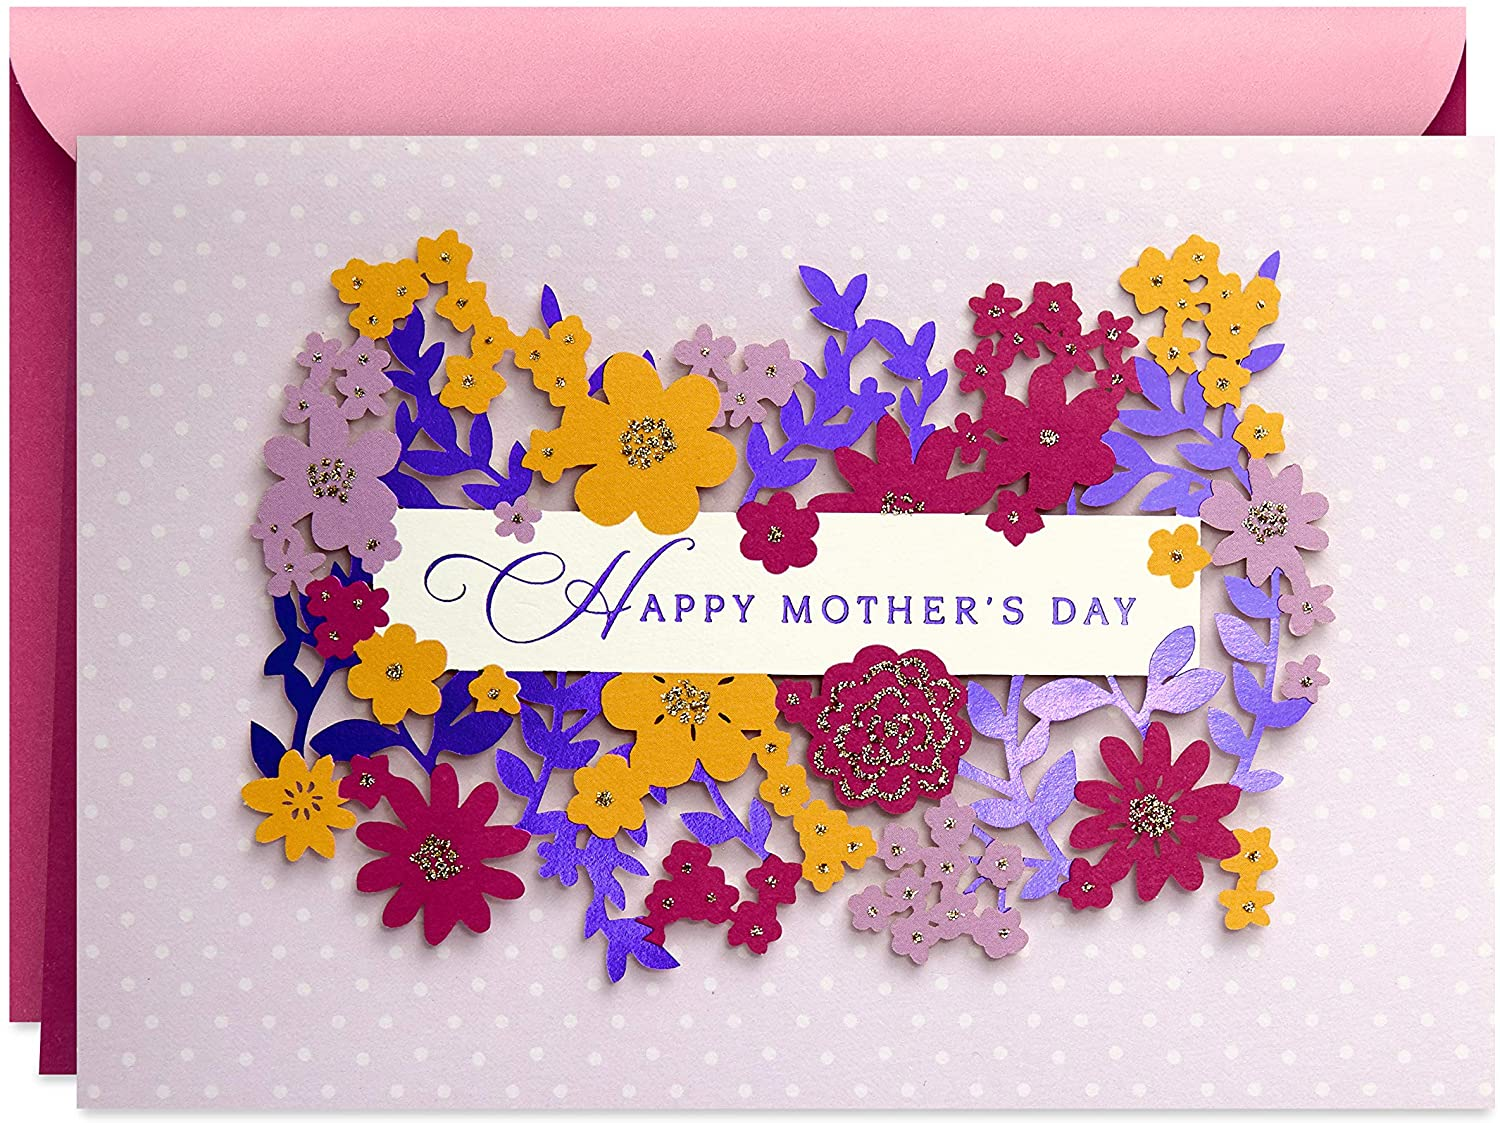 Happy Mother's Day Card by Hallmark